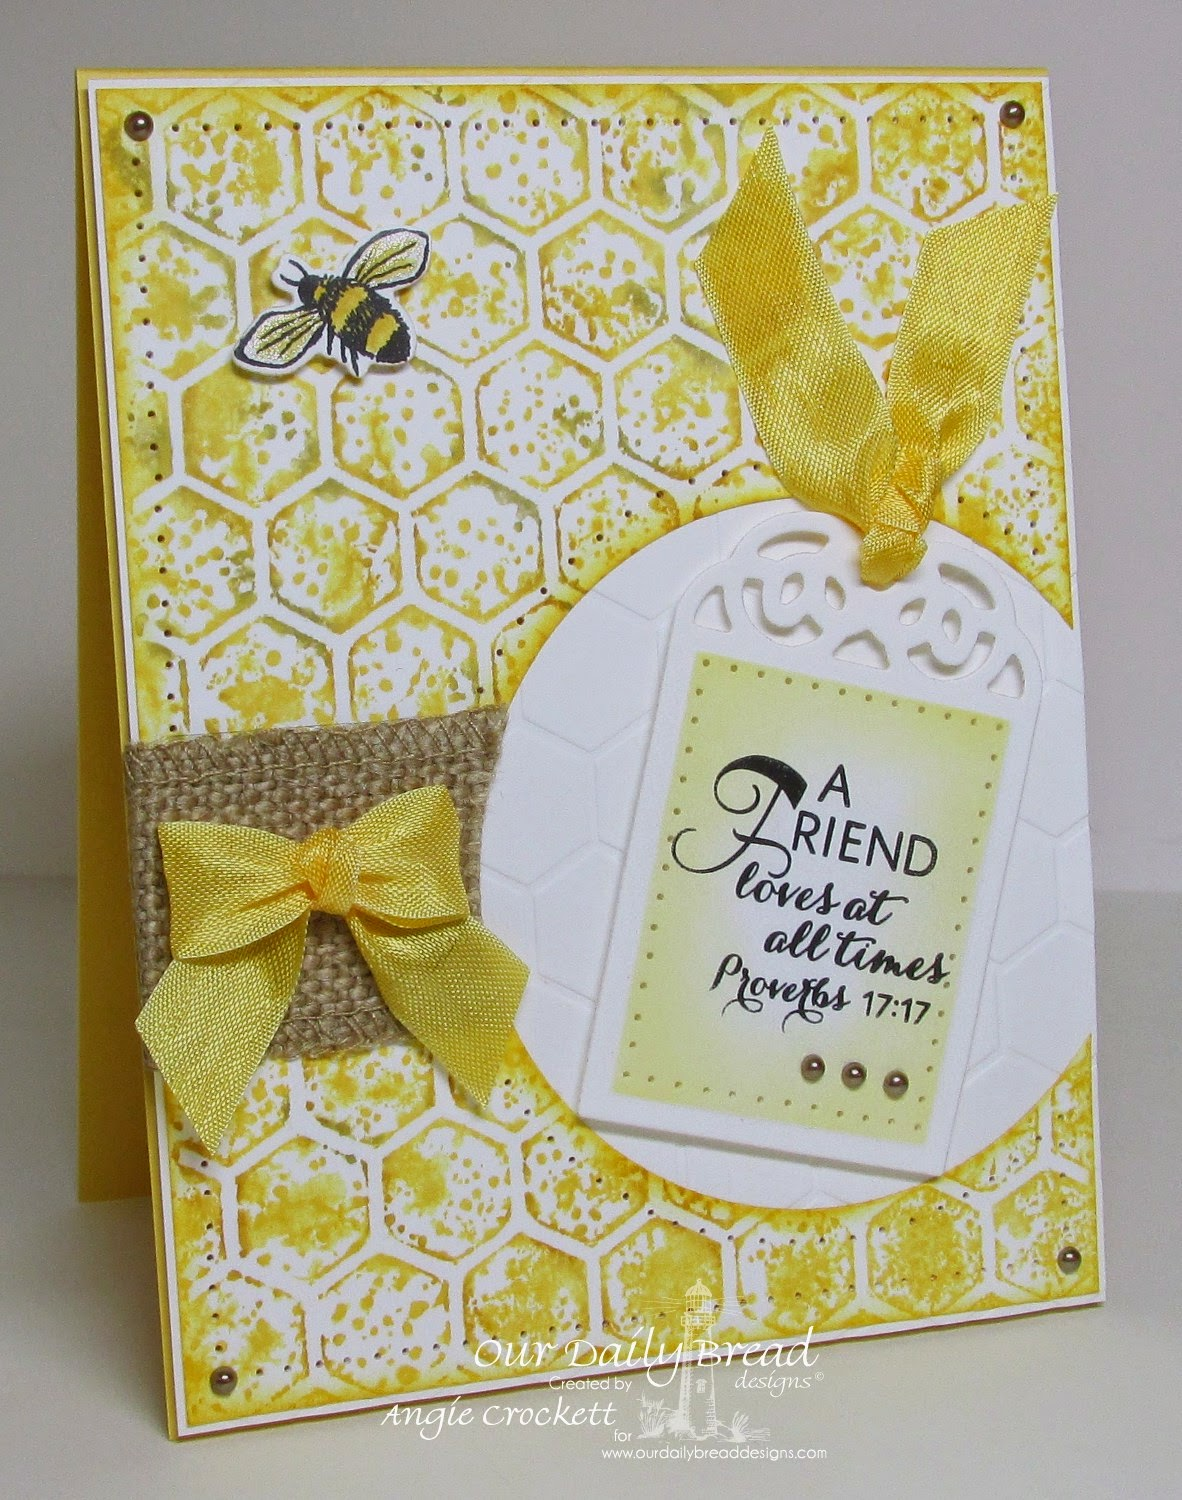 ODBD Zinnia, ODBD Zinnia and Leaves Die Set, ODBD Recipe Cards and Tag Die Set, Card Designer Angie Crockett